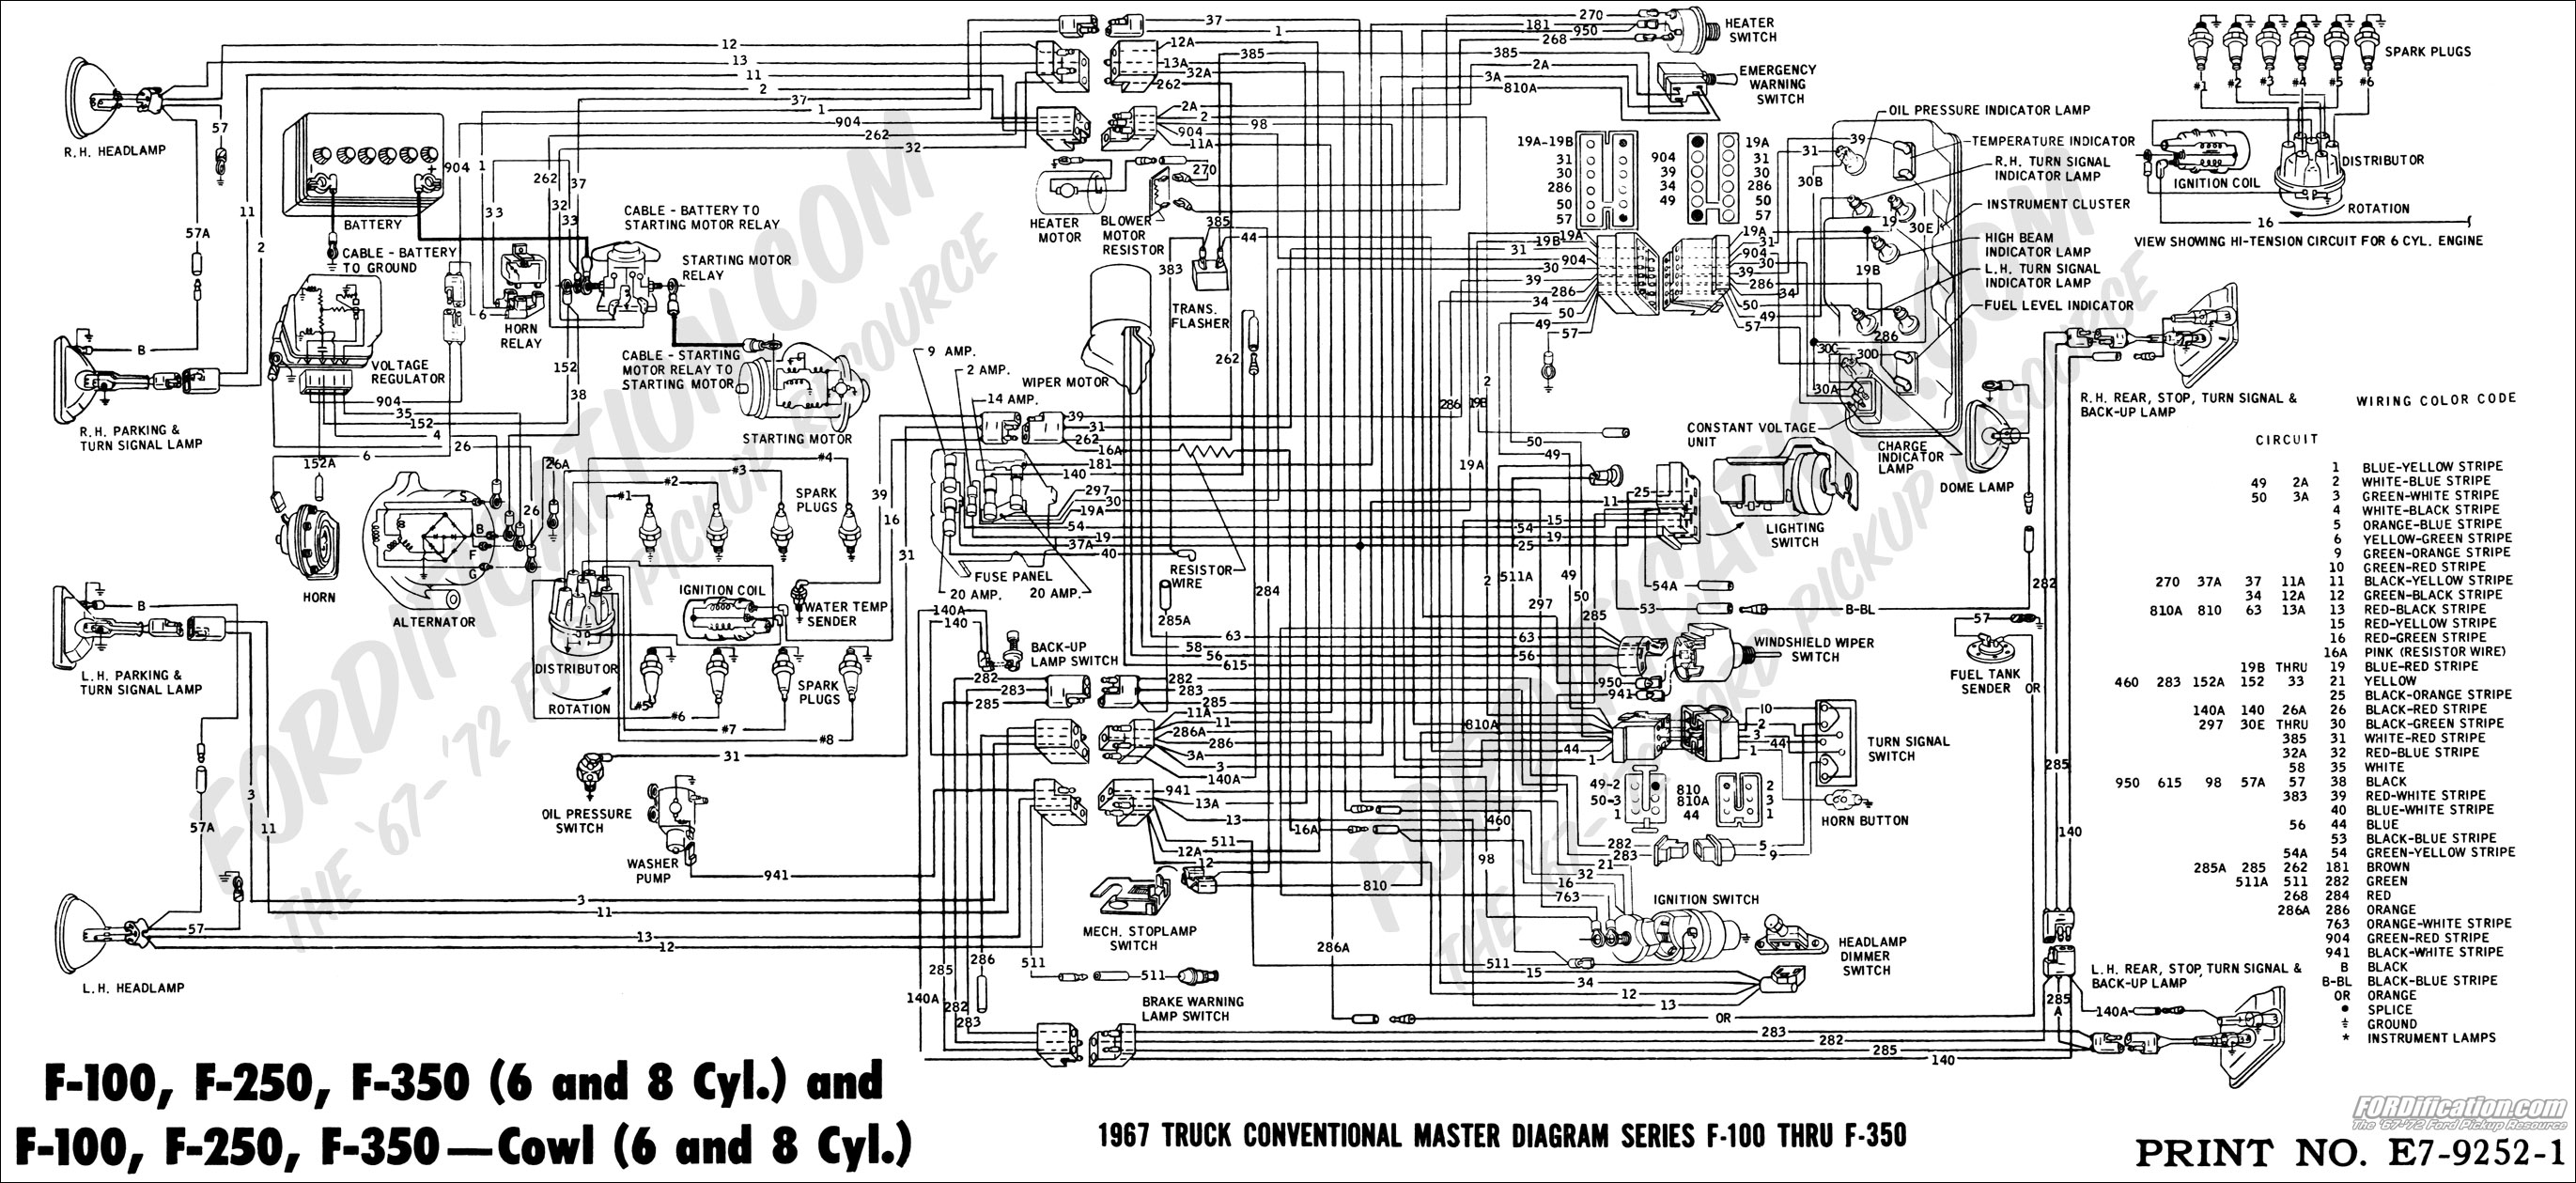 67masterdiagram ford truck technical drawings and schematics section h wiring ford truck radio wiring diagram at suagrazia.org